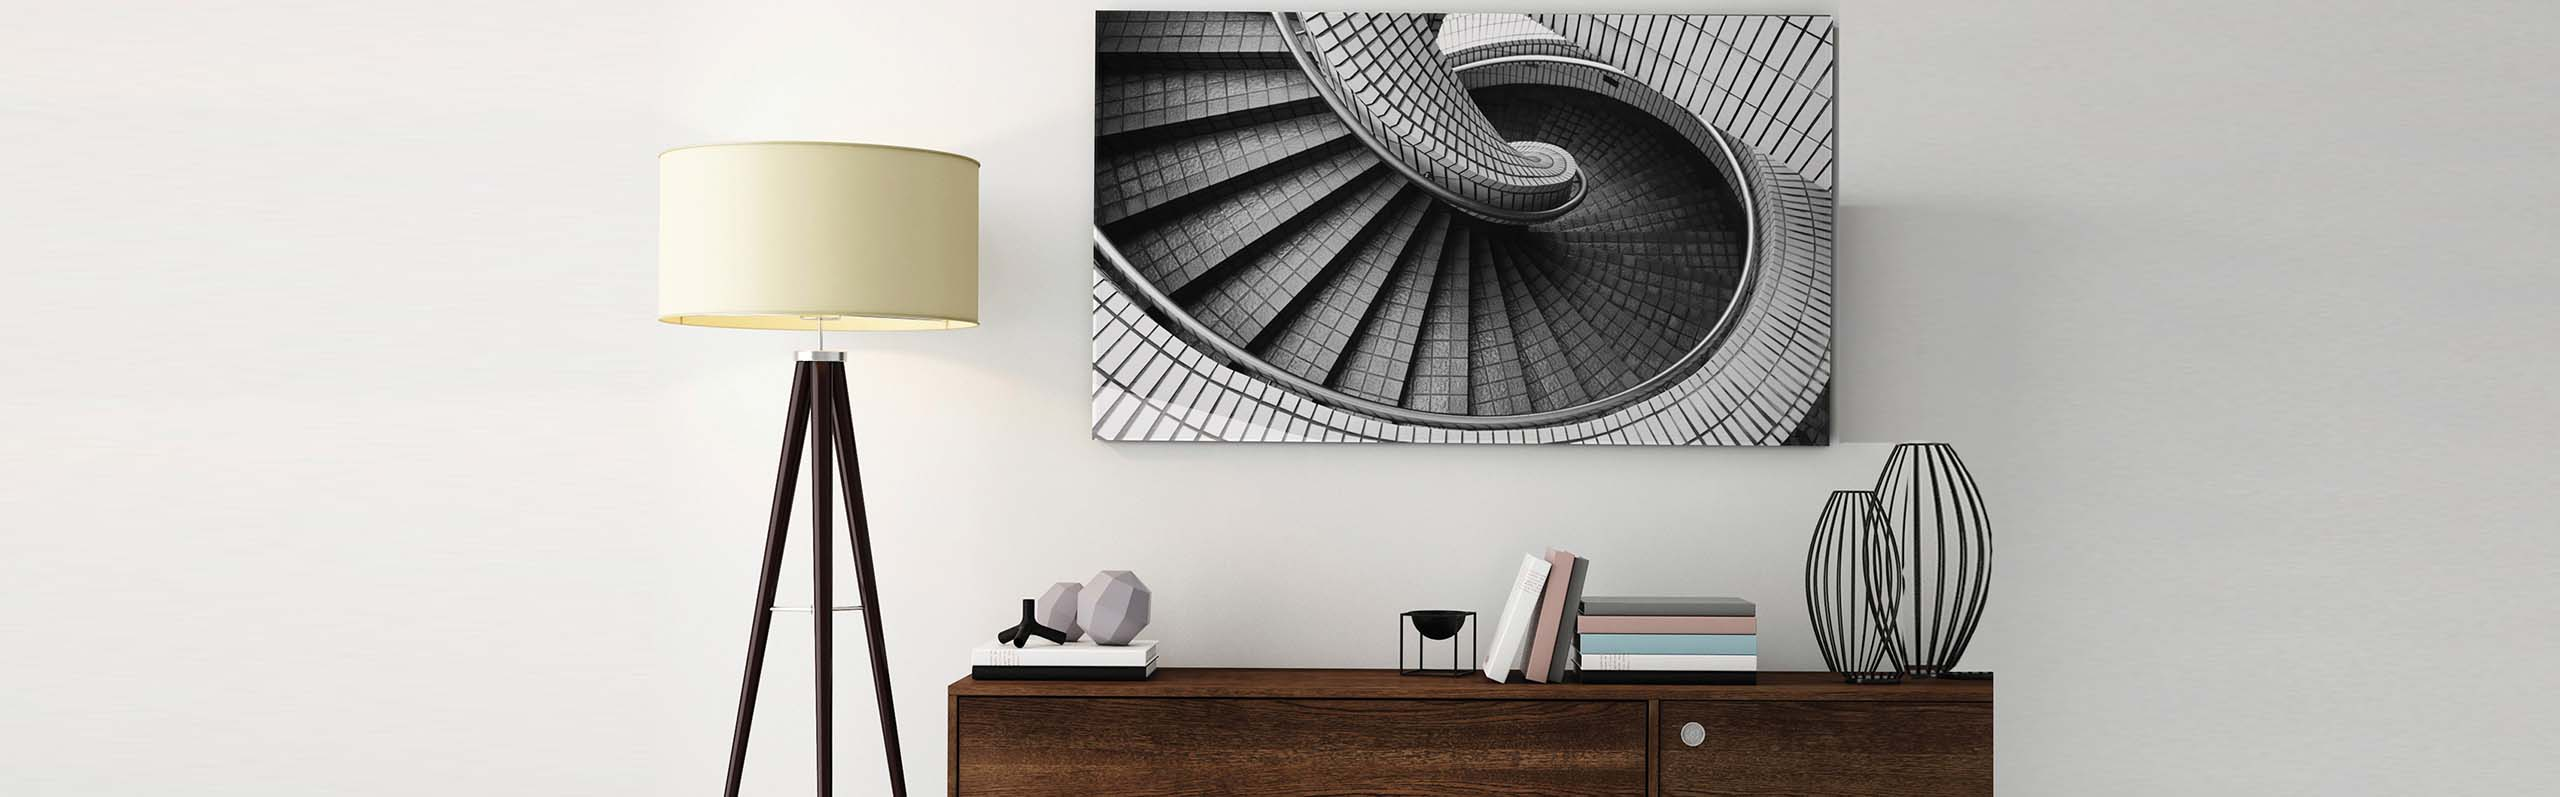 metal print on wall in living room